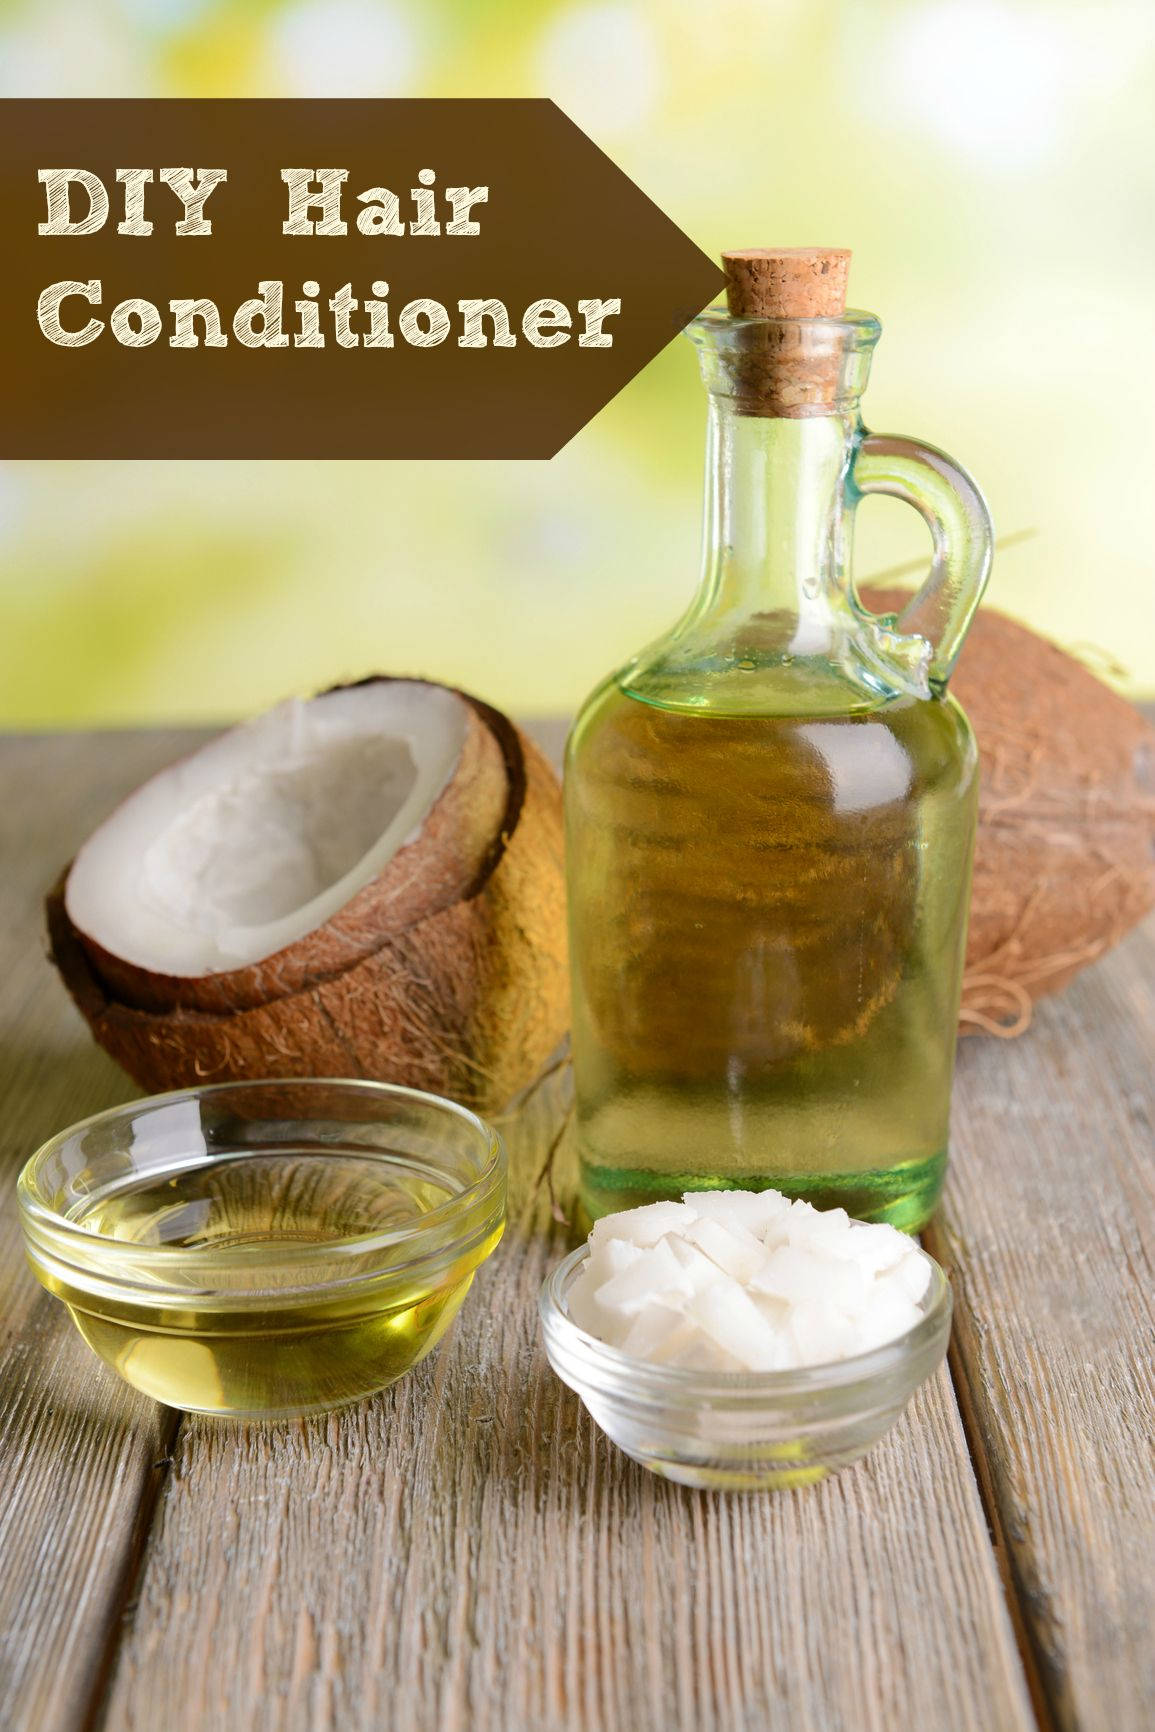 DIY Hair Conditioner or homemade leave-in conditioner ...